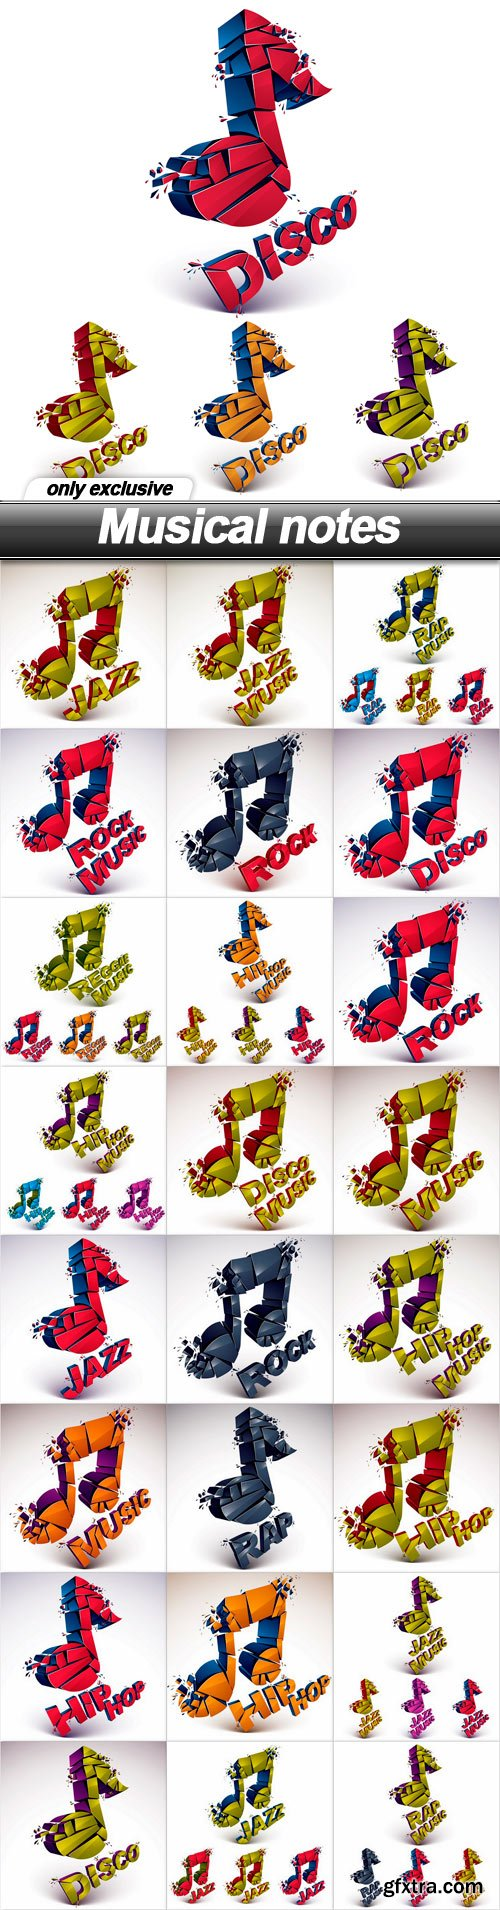 Musical notes - 25 EPS